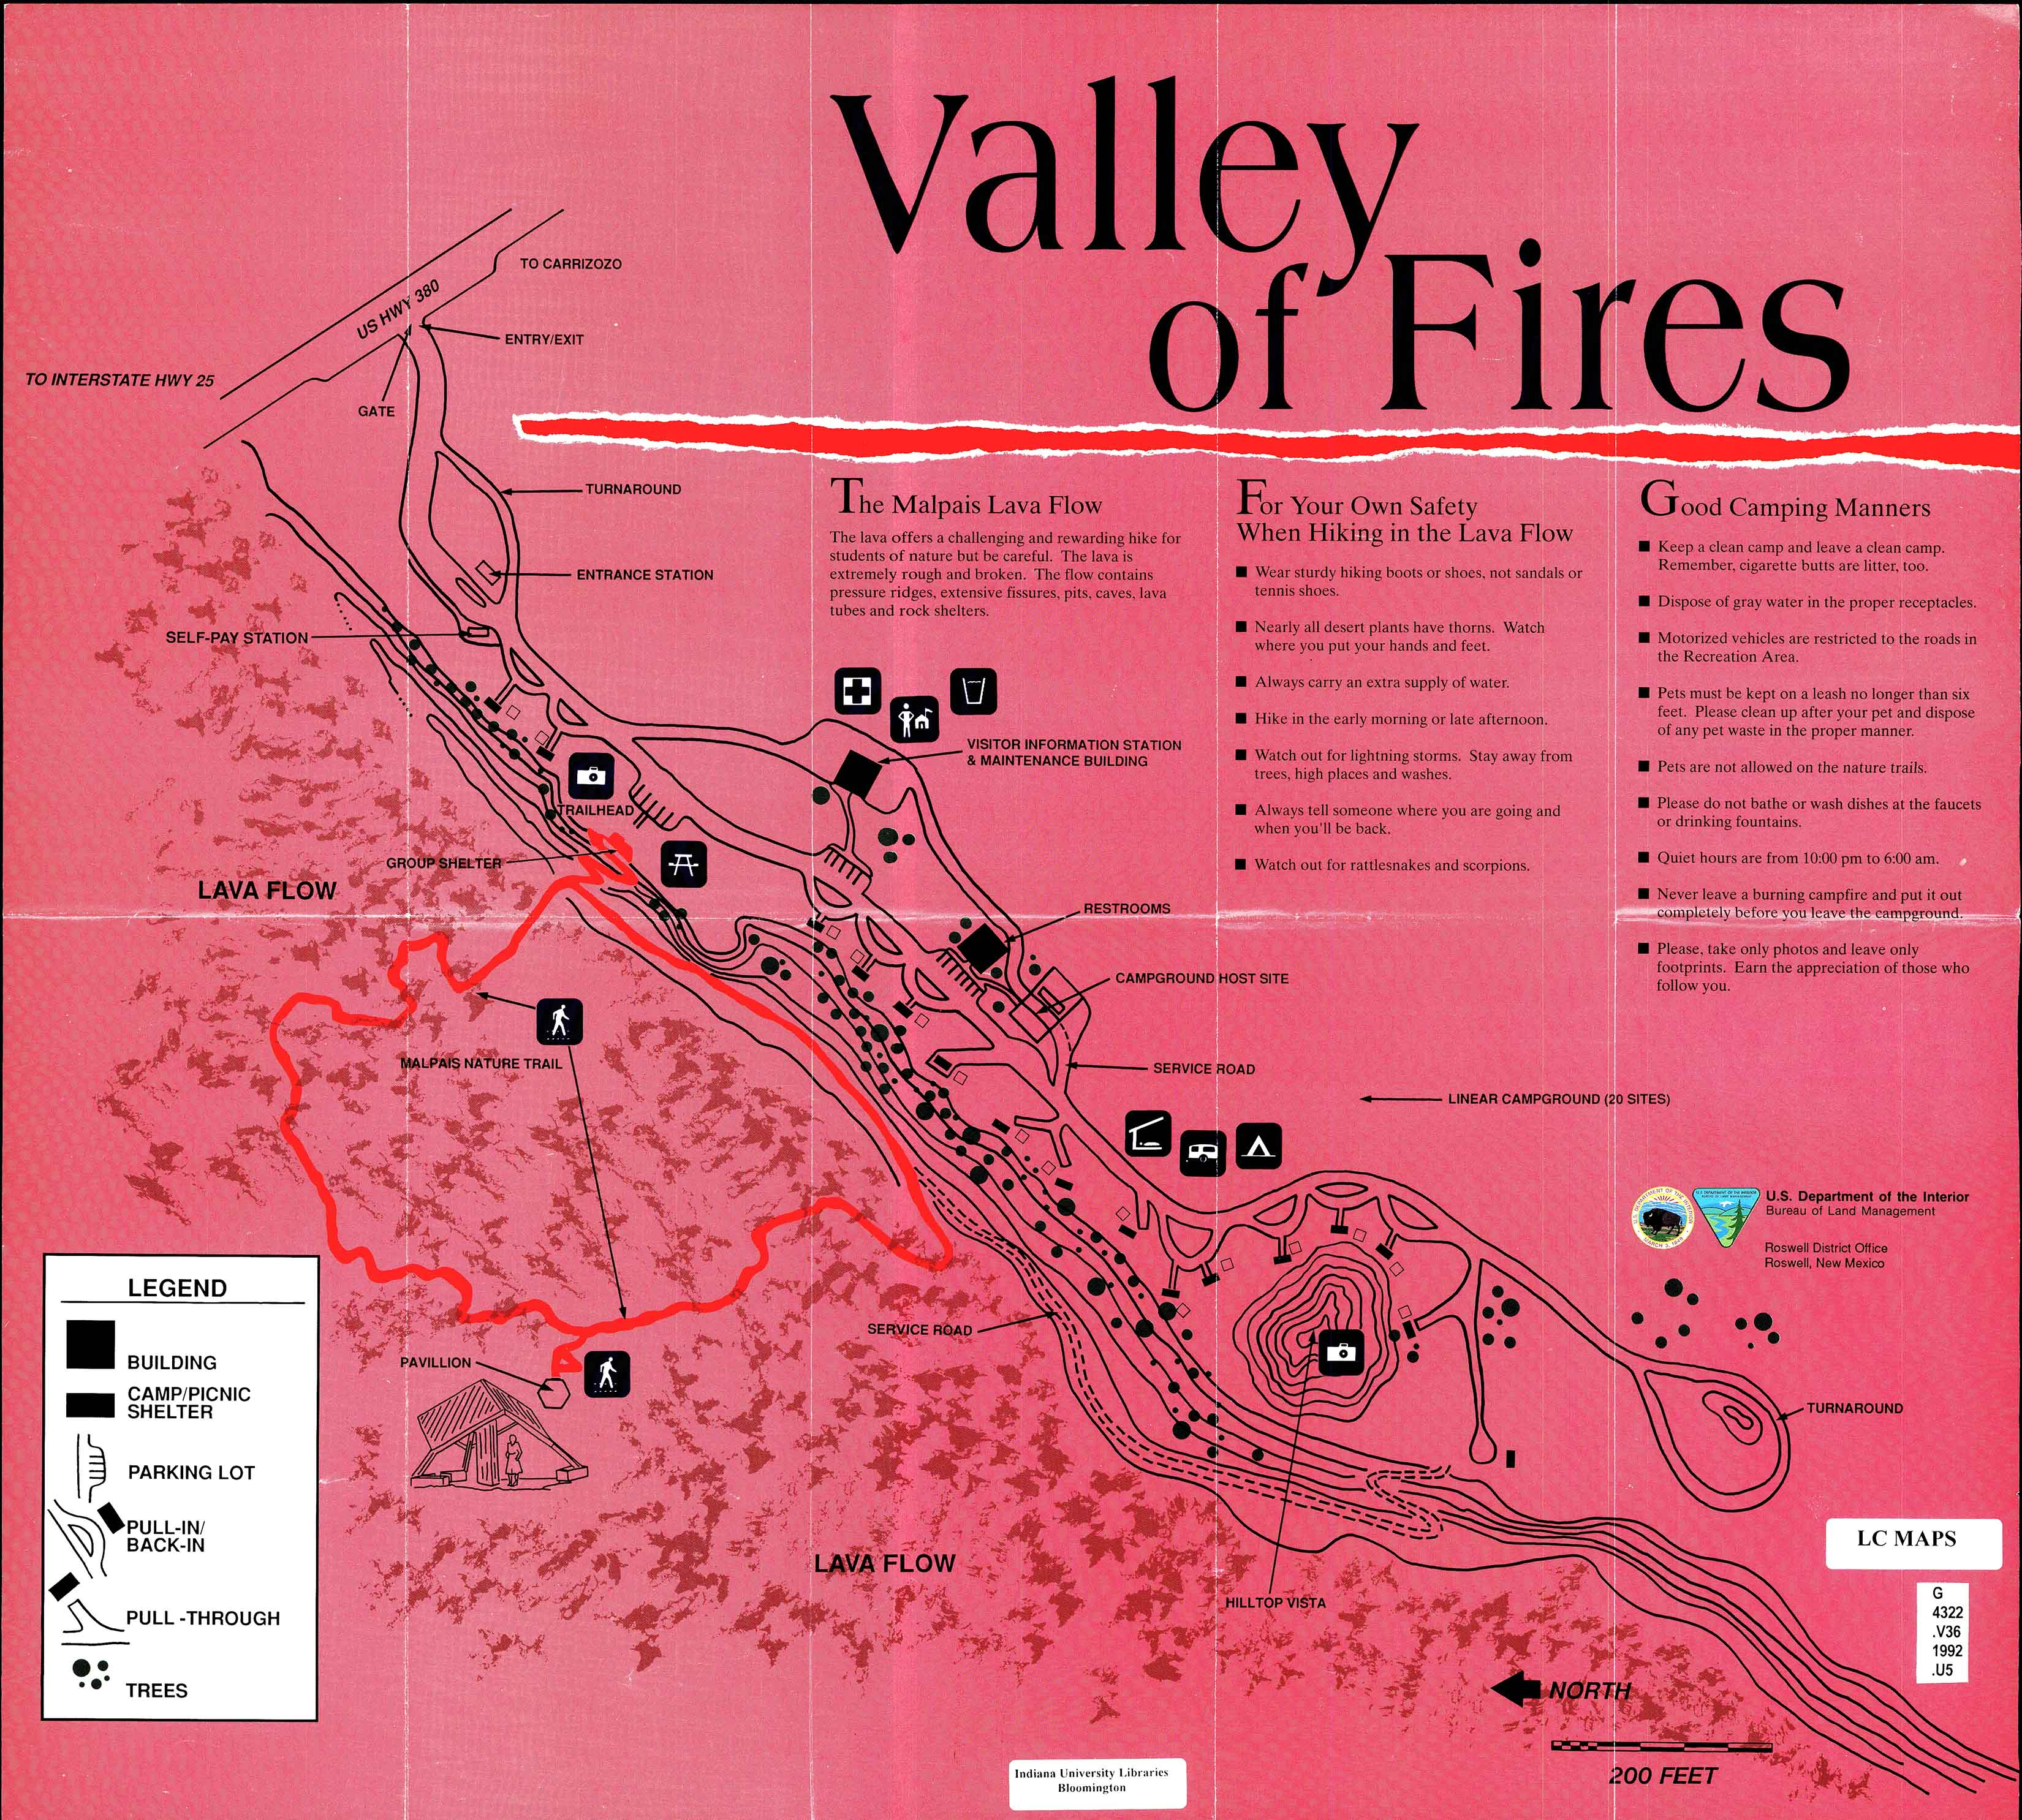 Image of the Valley of Fires